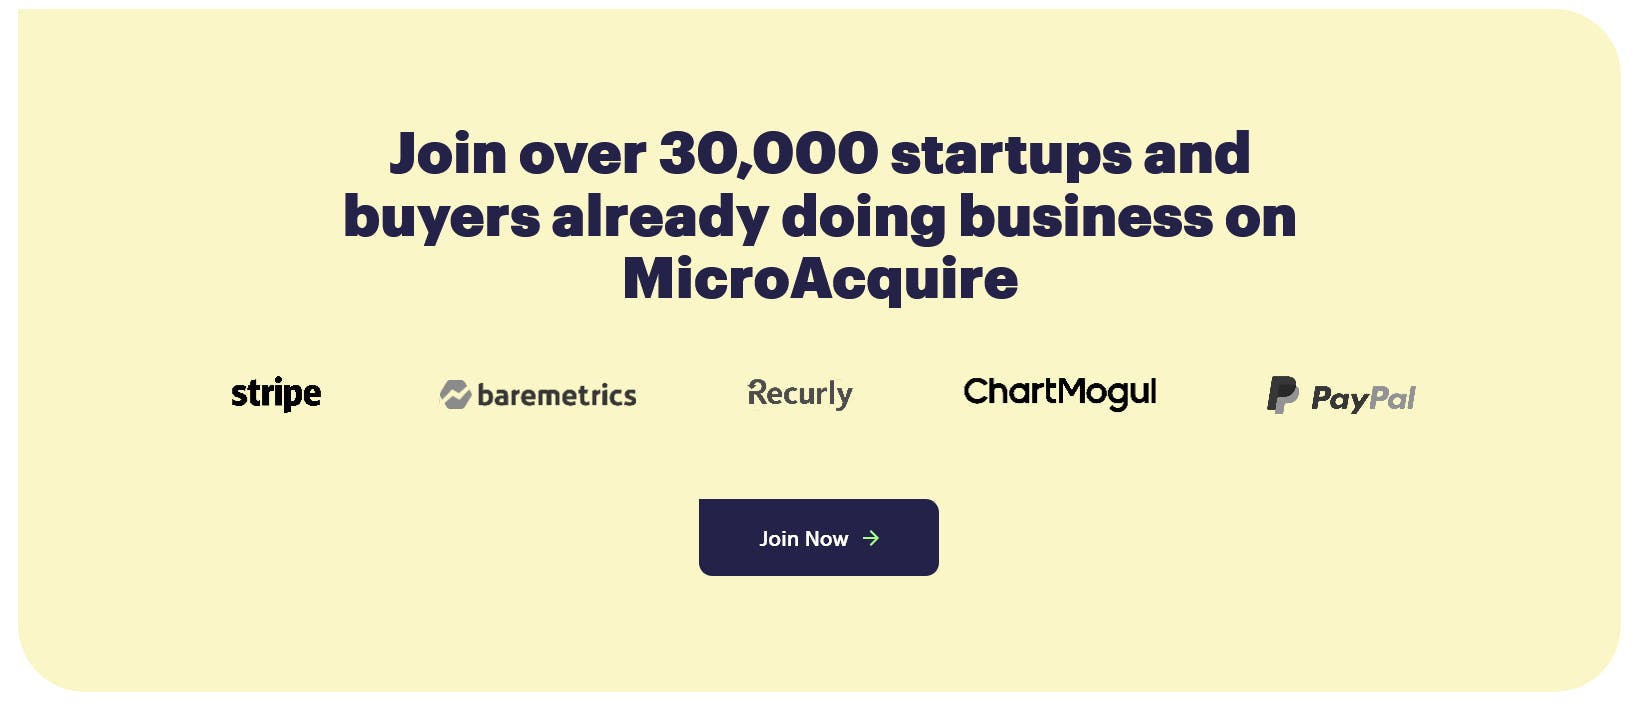 Screenshot 2021-07-04 at 22-51-14 MicroAcquire - Startup acquisition marketplace Free Private No middlemen .png